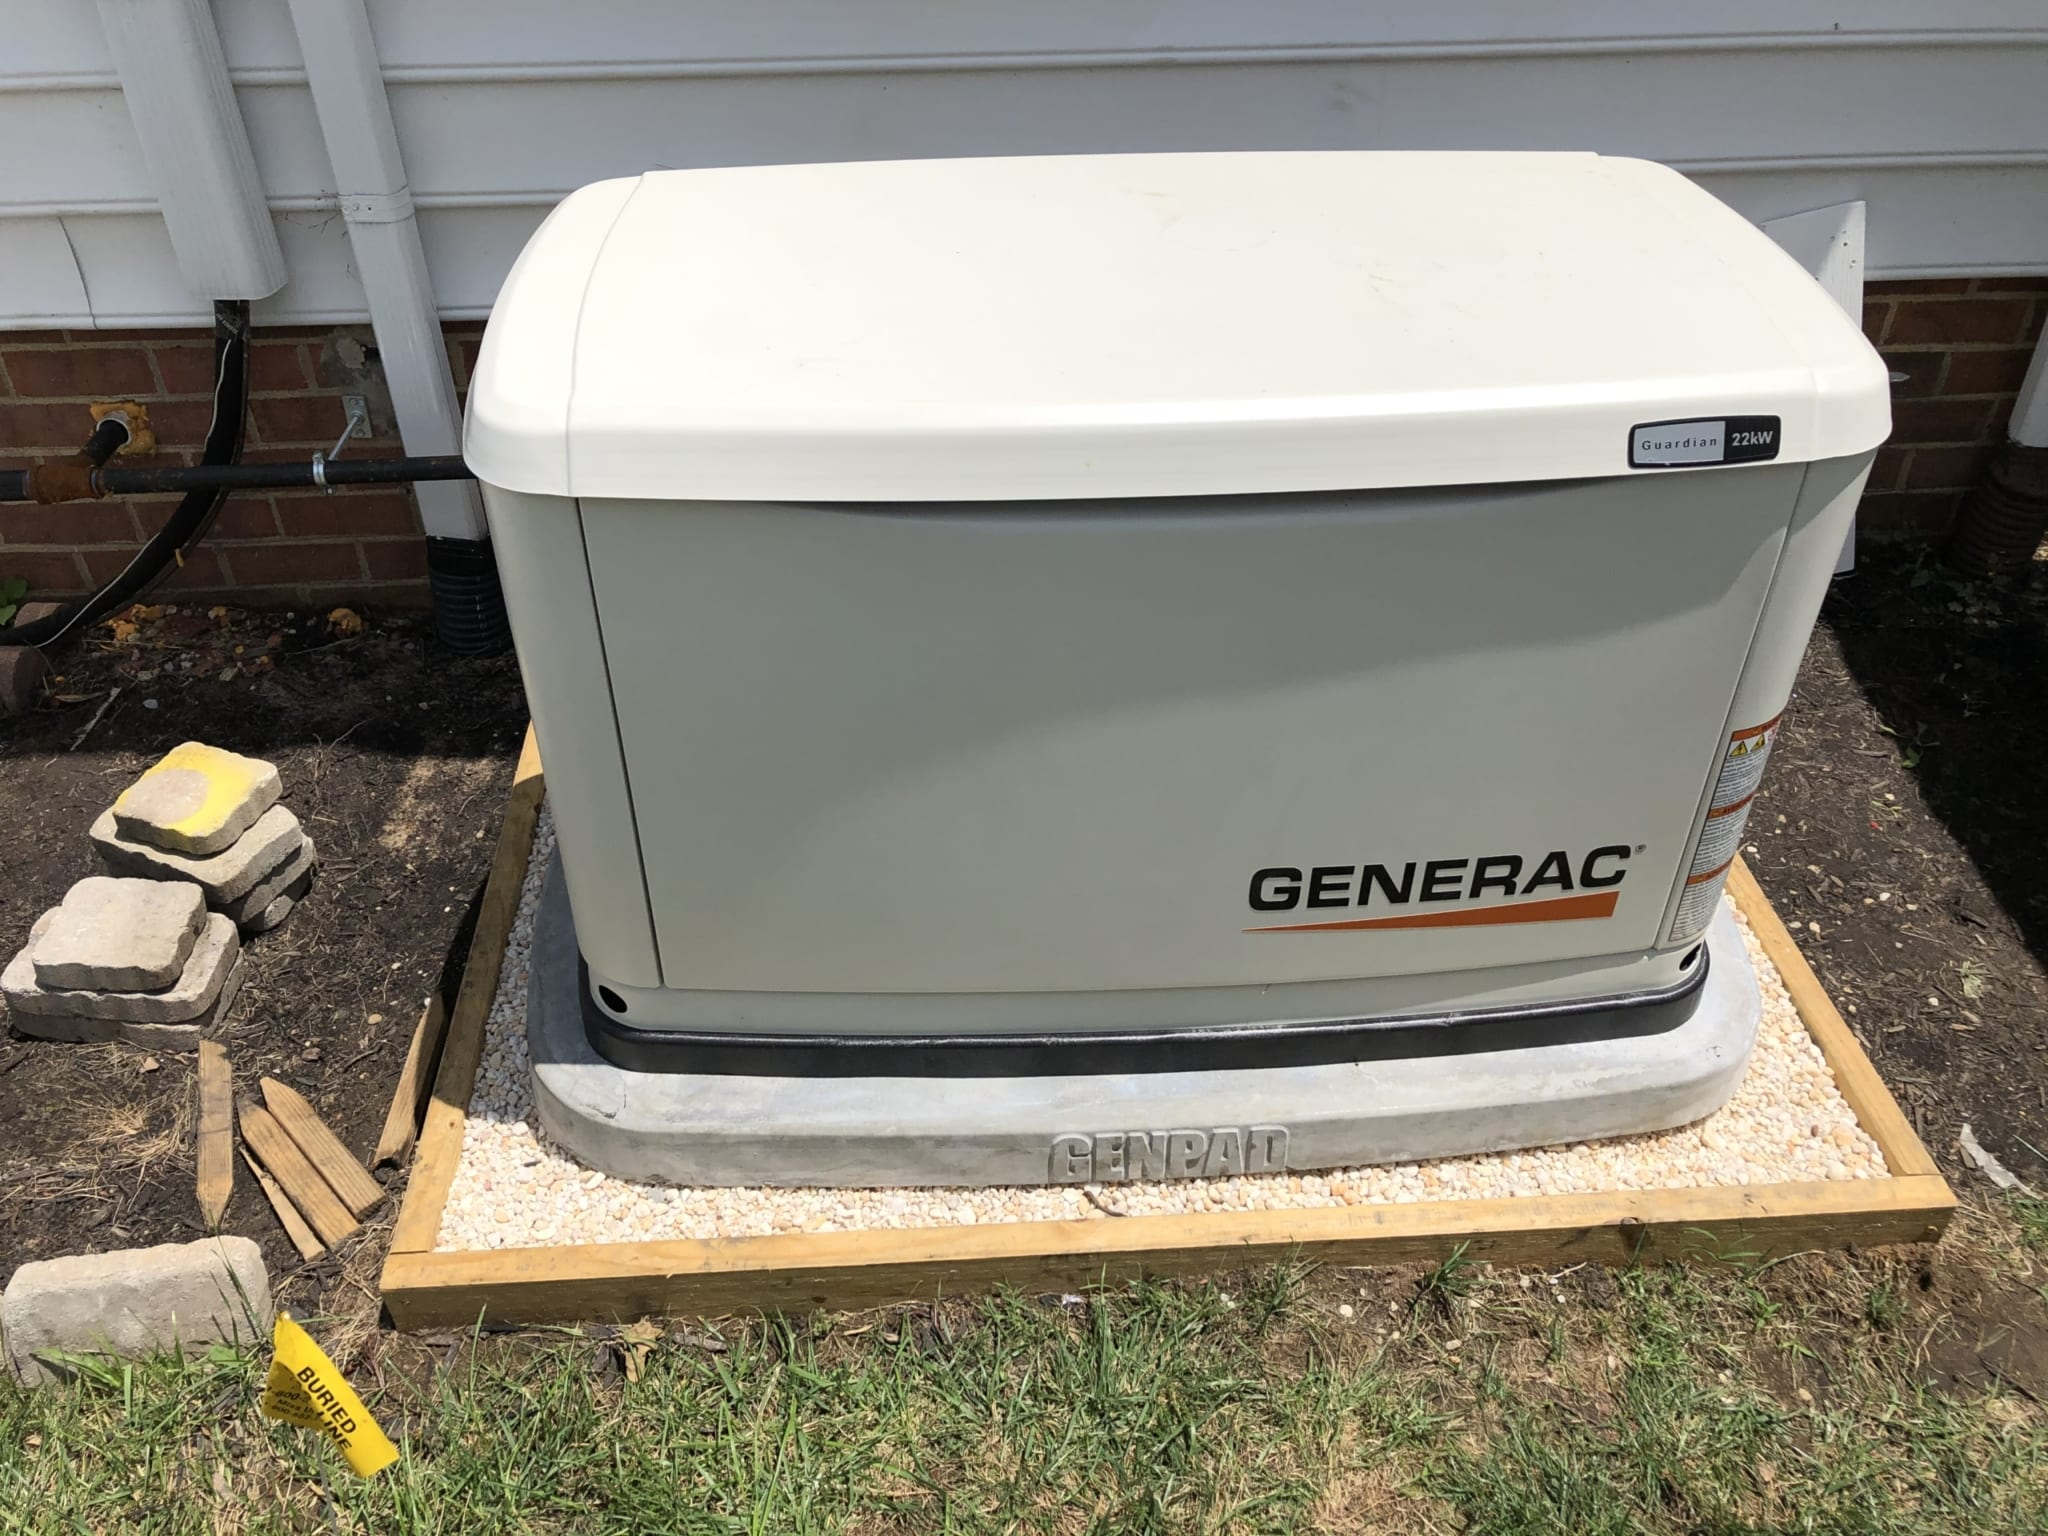 6.29.20 Colonial Heights Generac Automatic Standby Generator